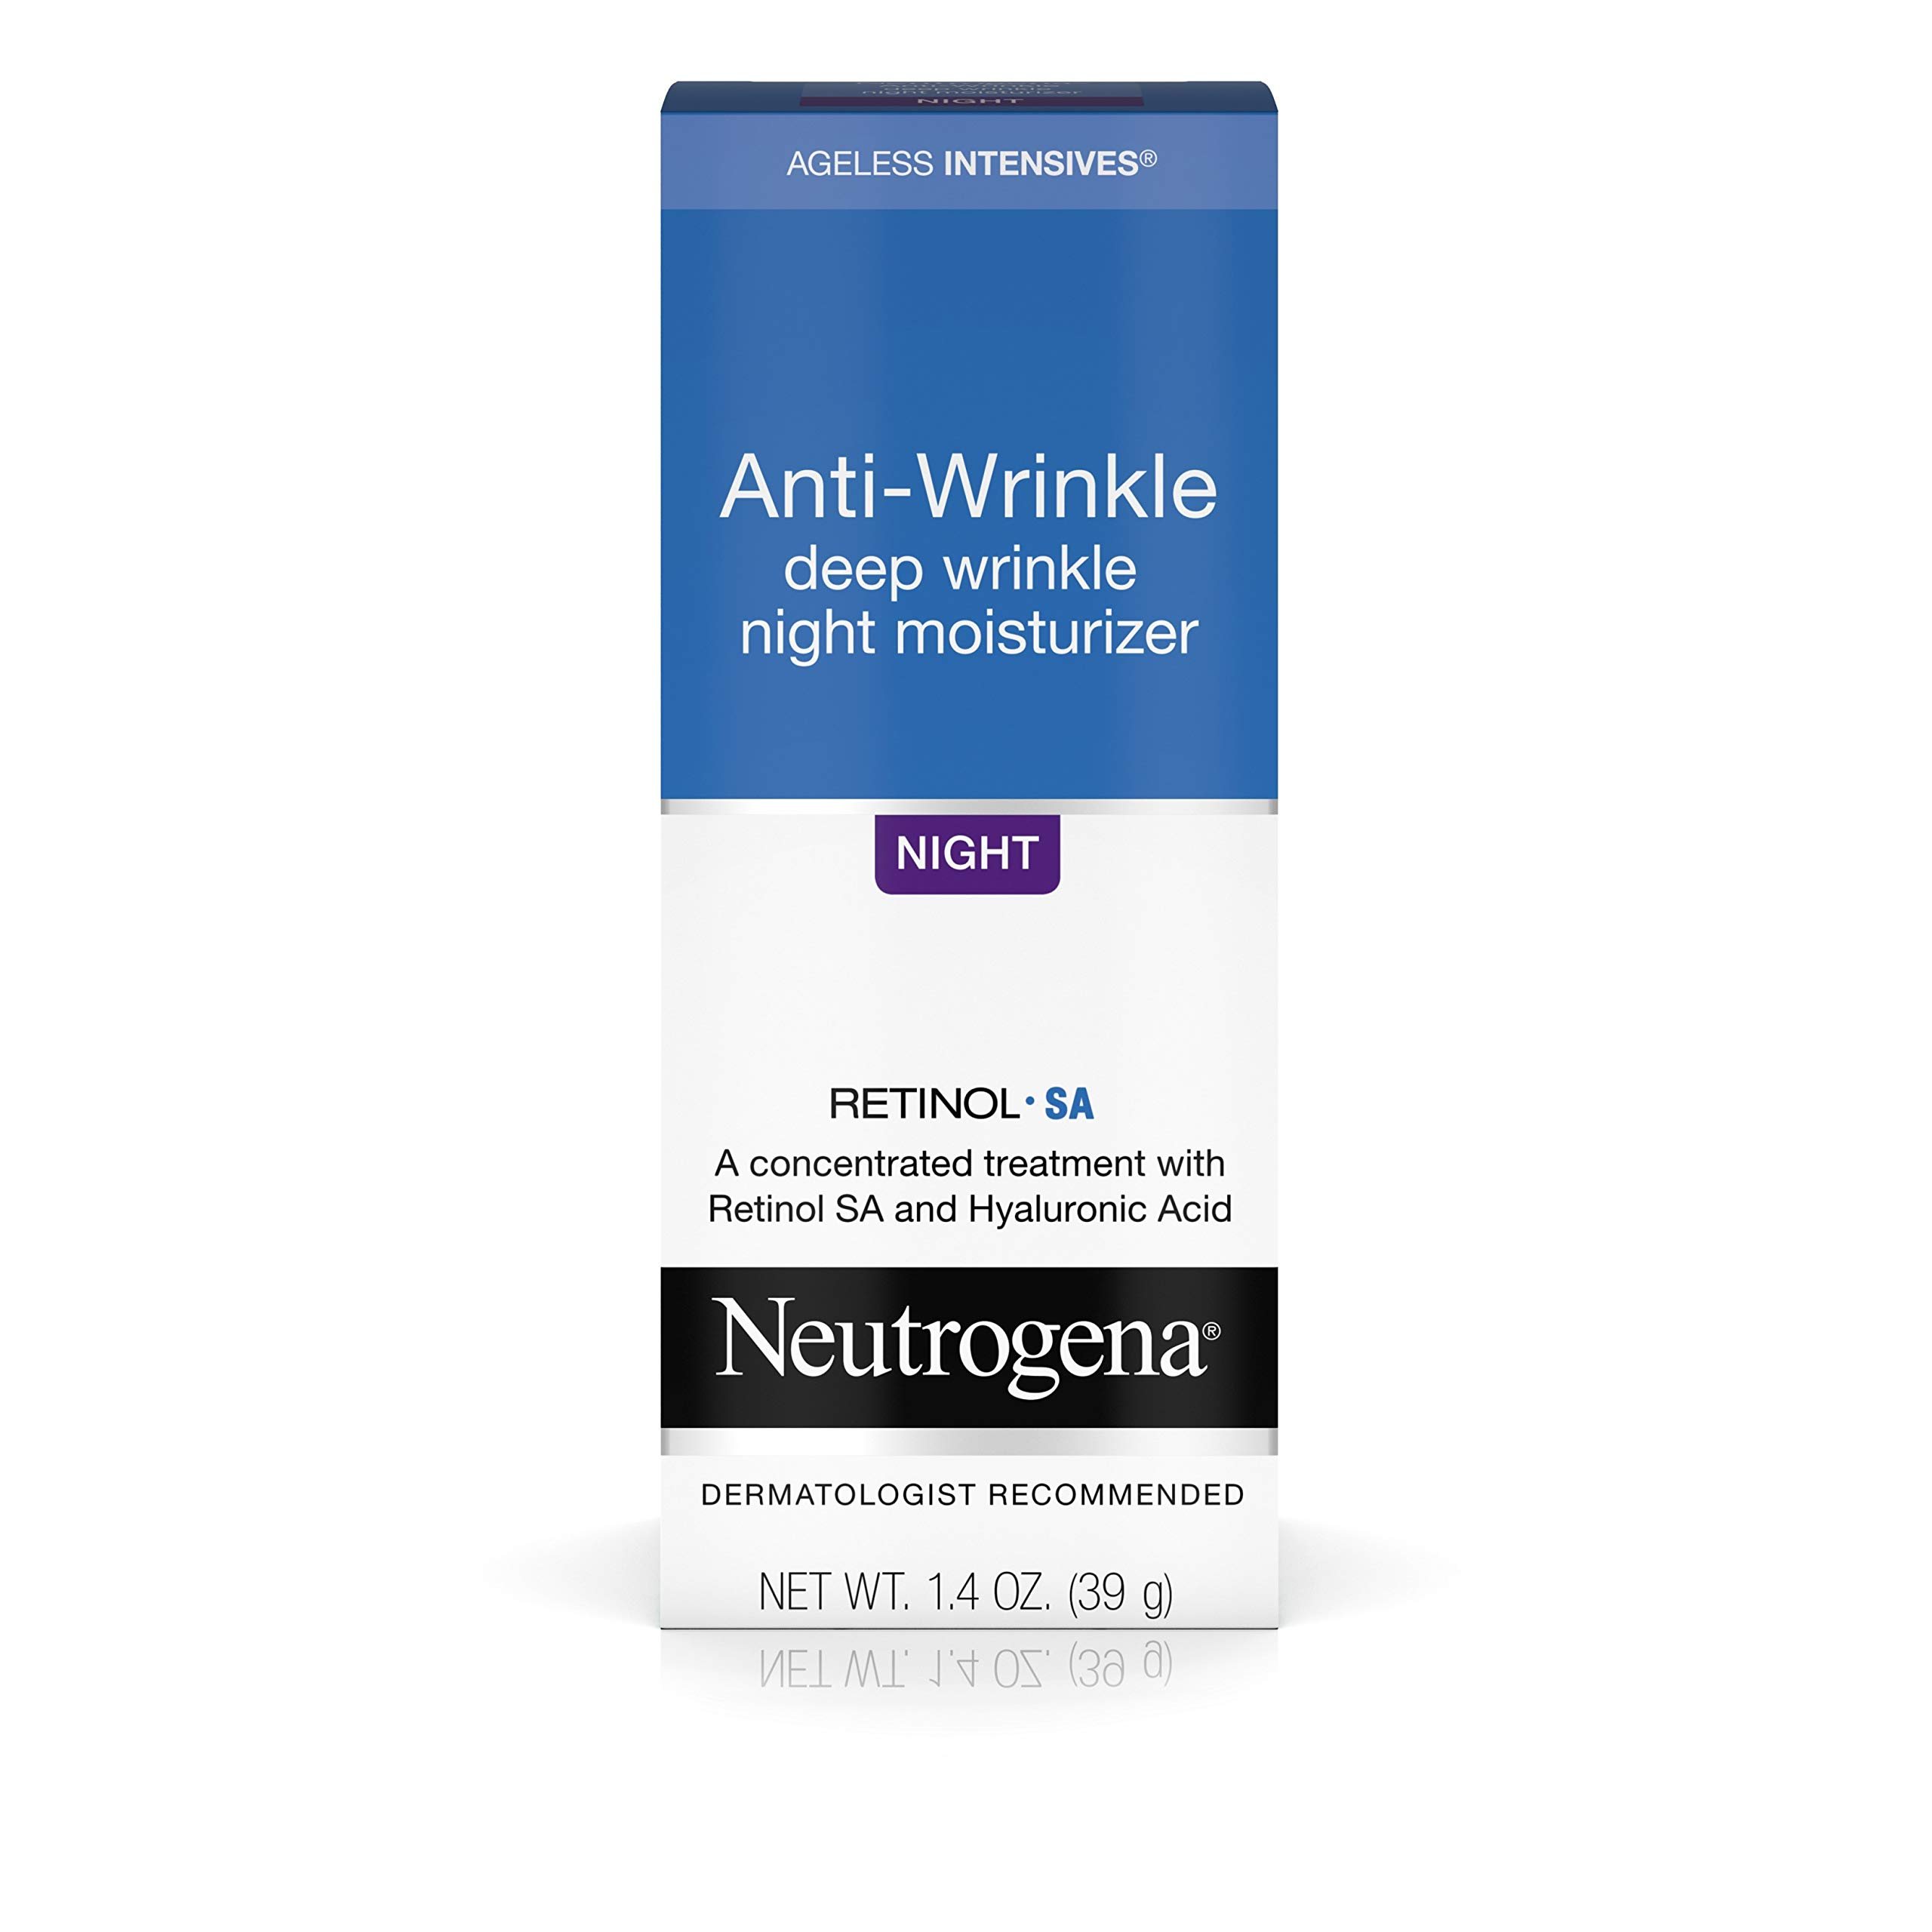 Neutrogena Ageless Intensives Anti Wrinkle Cream with Retinol and Hyaluronic Acid - Night Cream with Shea Butter, Vitamin E, Vitamin A, Glycerin, Hyaluronic Acid, 1.4 oz by Neutrogena